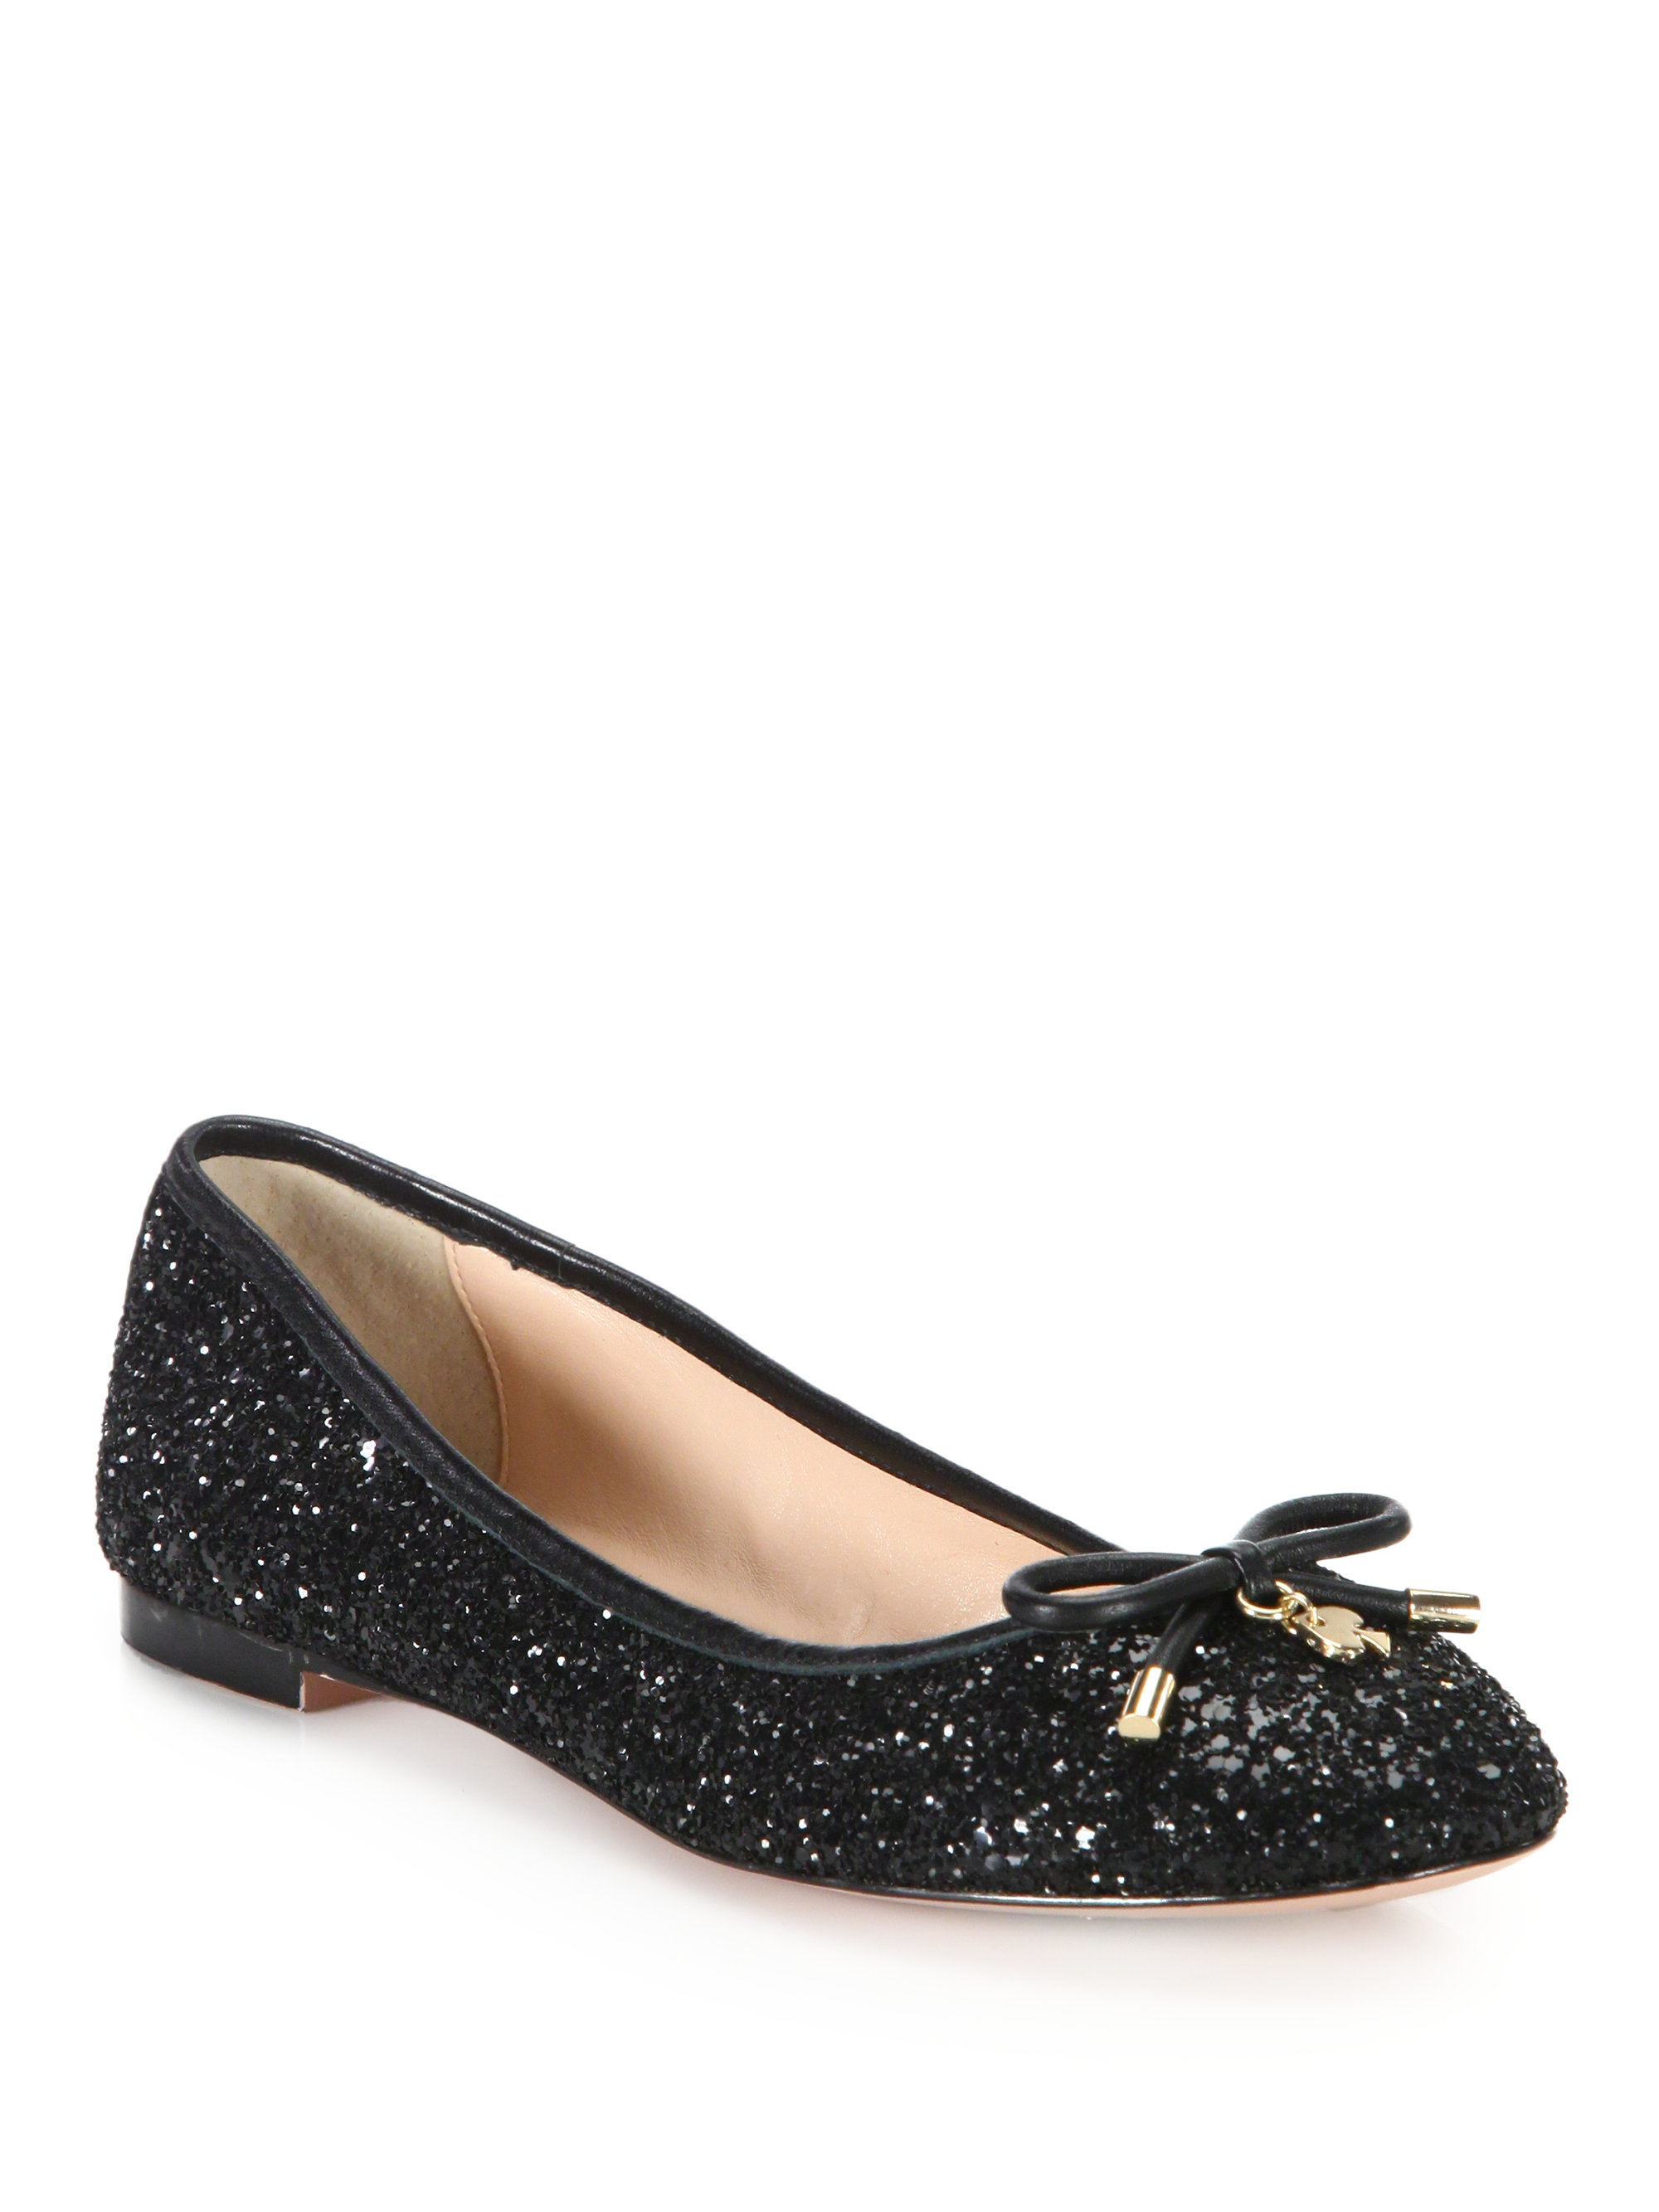 lyst kate spade new york willa glitter ballet flats in black